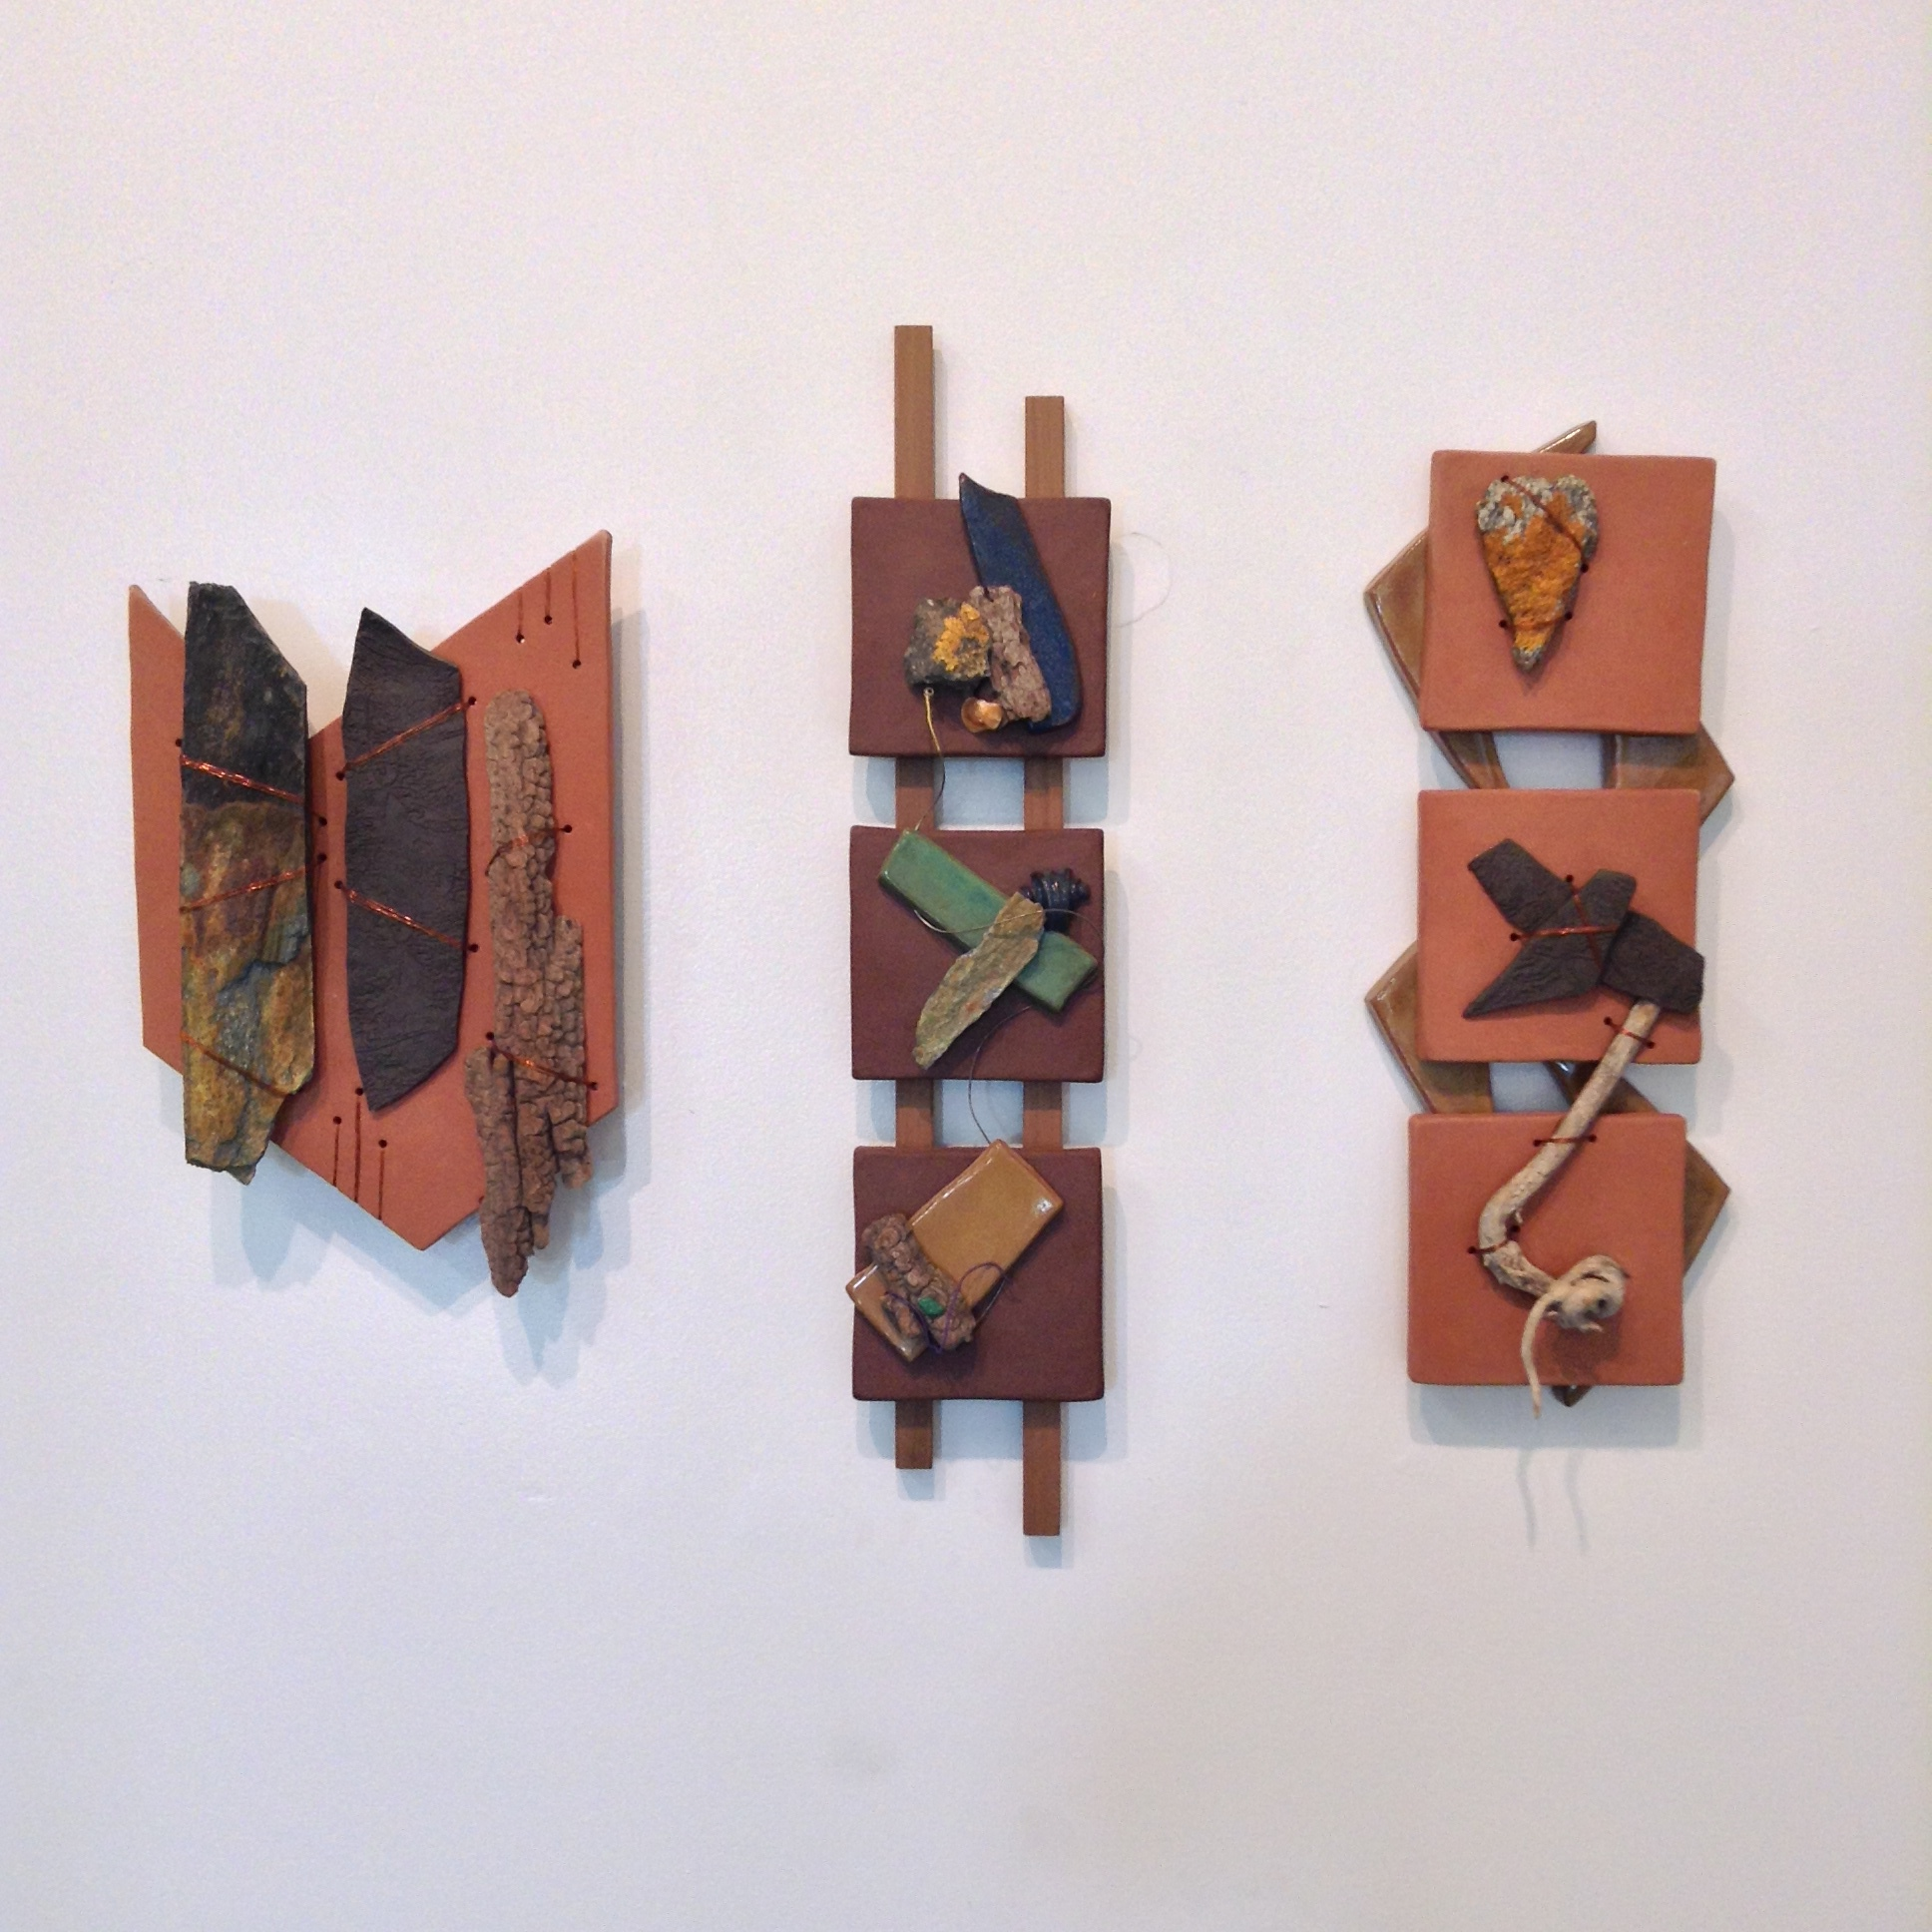 Sculptures by Samantha Goodall Ceramic & Found Objects